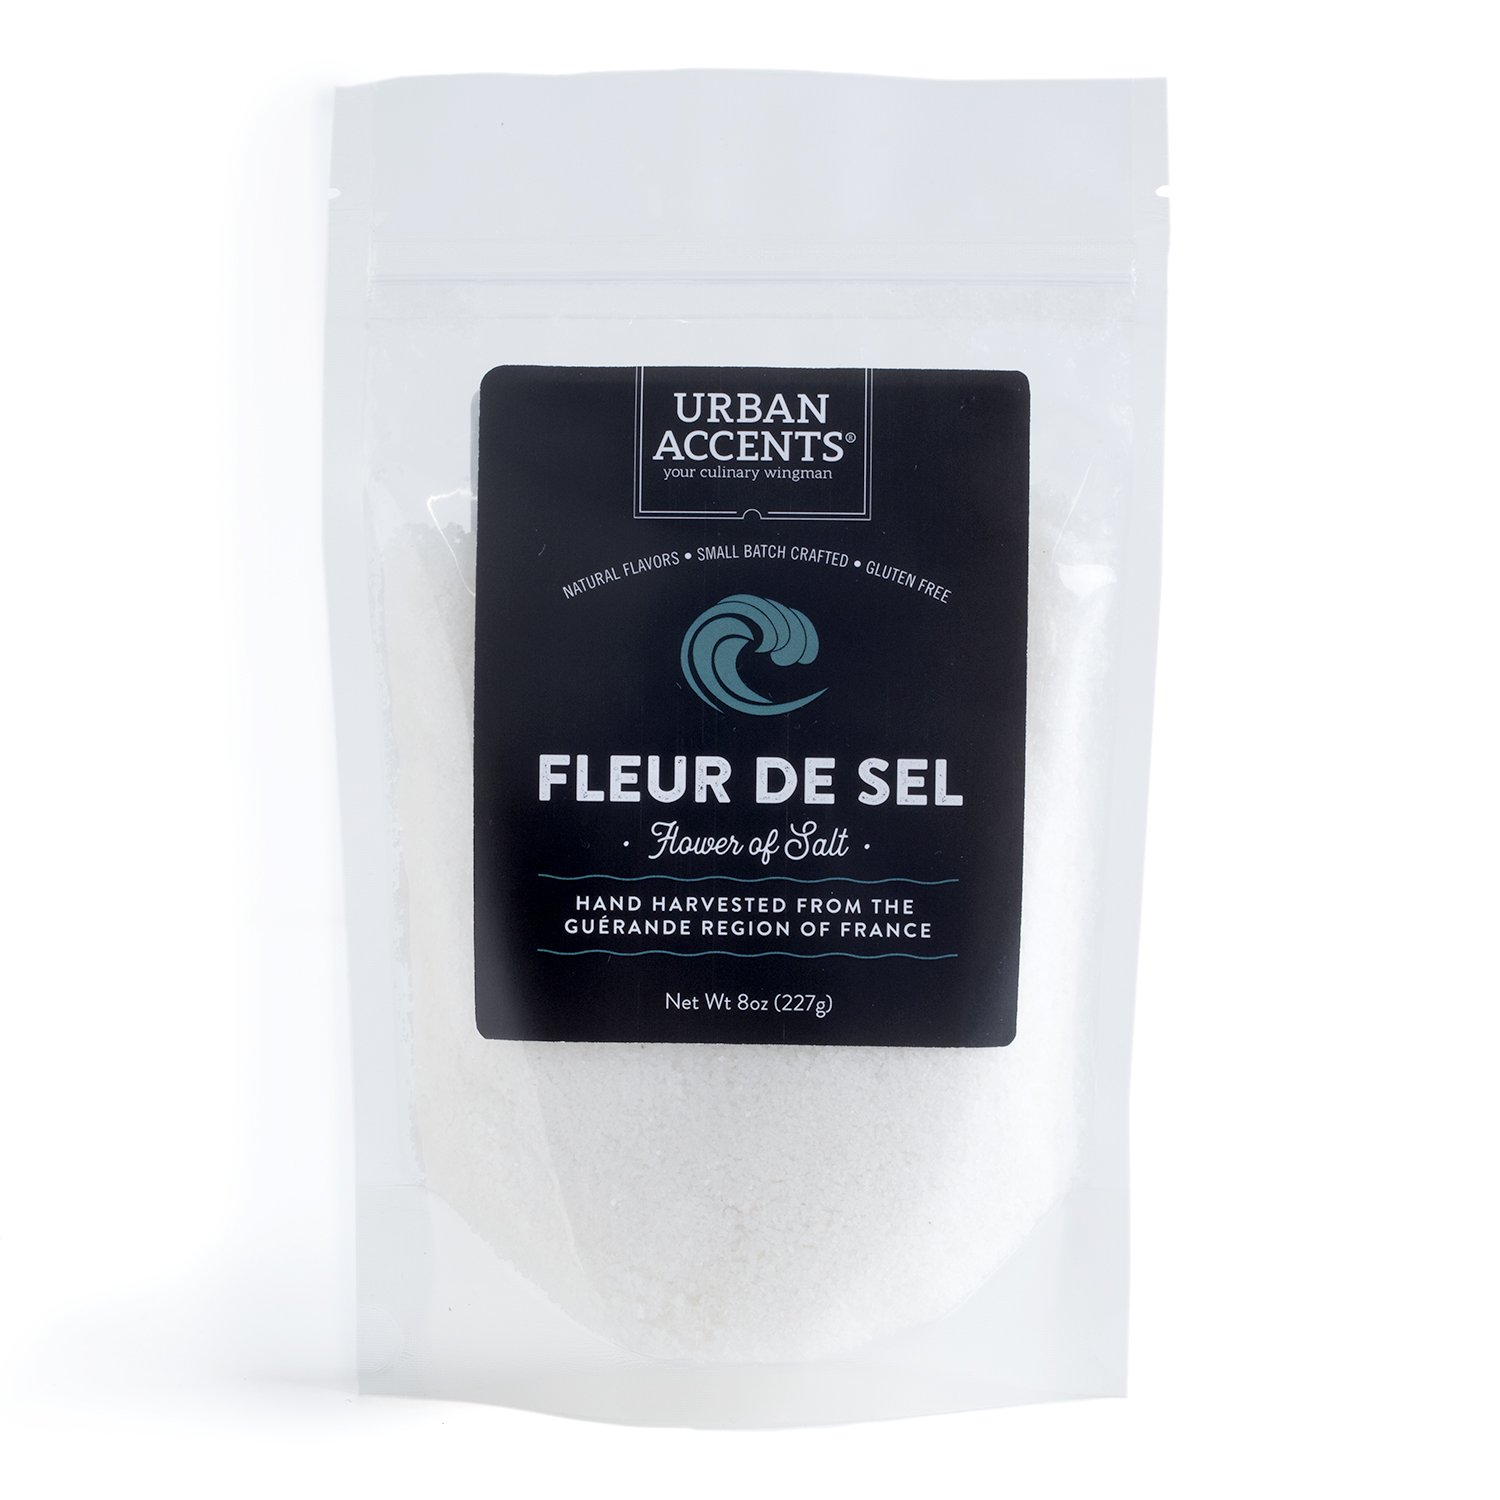 Urban Accents Urban Accents Fleur de Sel - Flower of Salt -Sea Salt from France, Great for Savory & Sweet Dishes and Hand Harvested by Wooden Tools, for an Airy, Fluffy Texture, 8 Ounces.